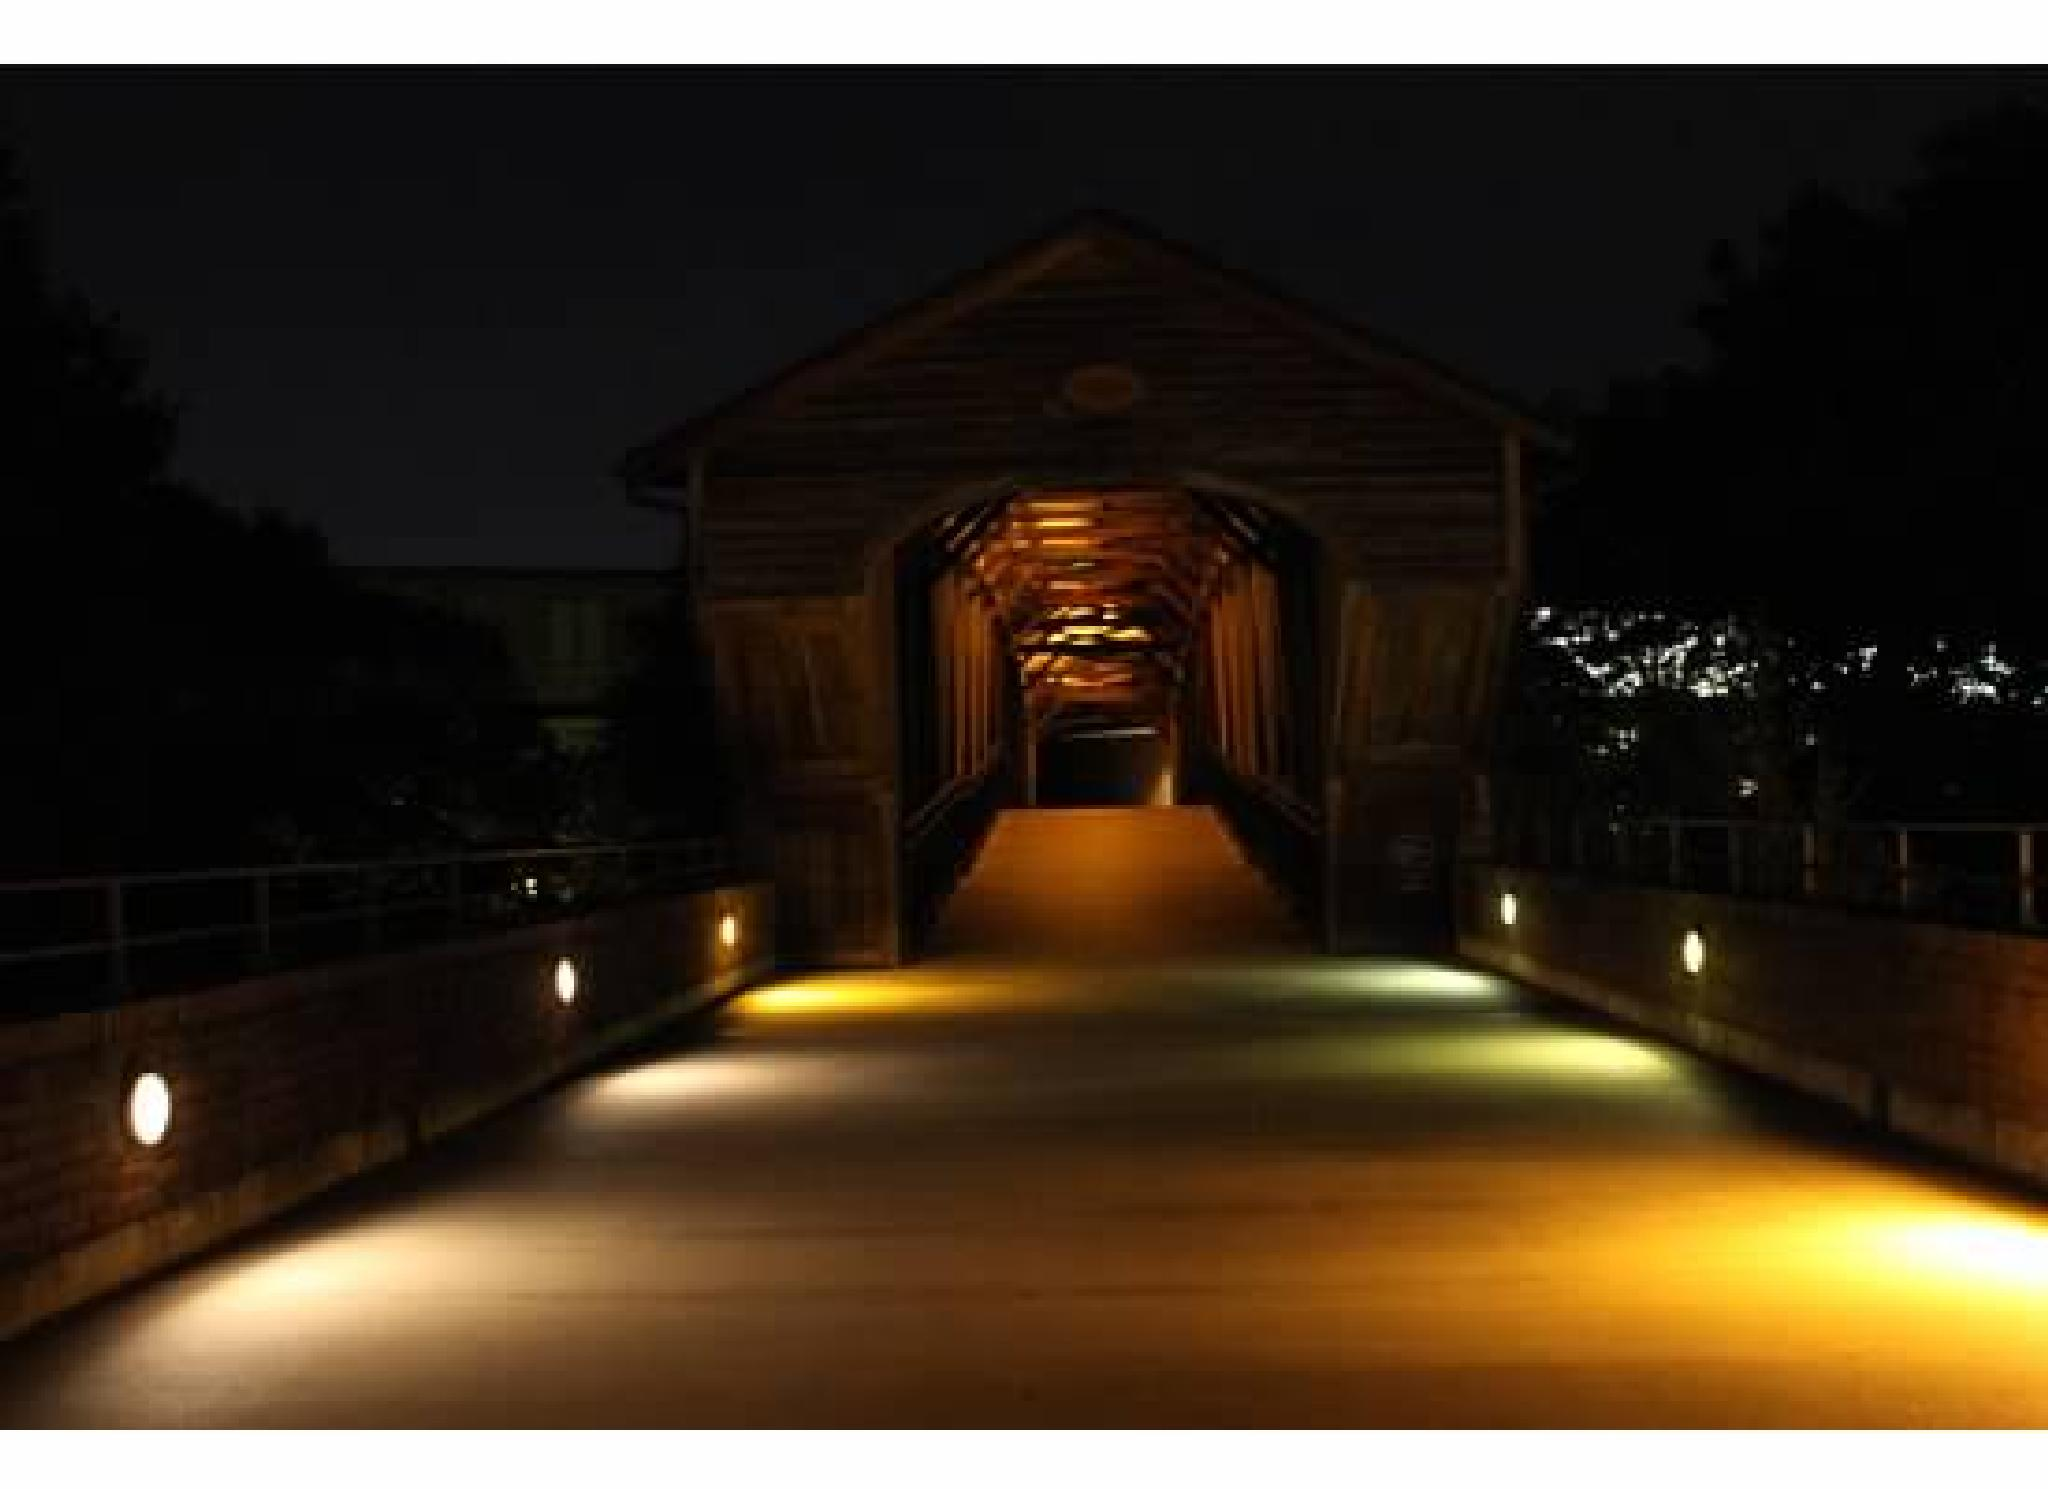 Covered Bridge at Night by kasey.bragg